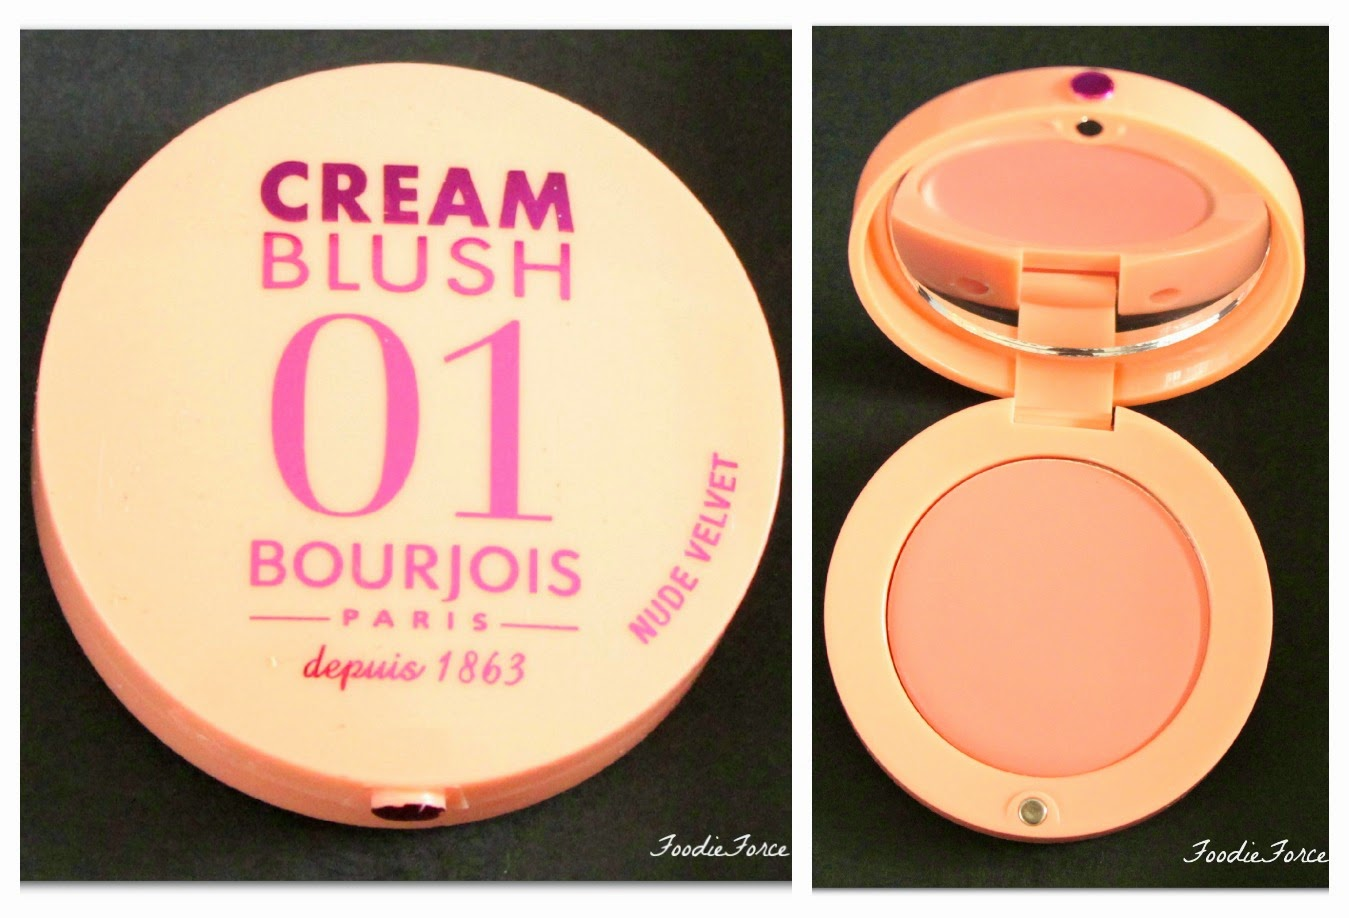 Bourjois Cream Blush